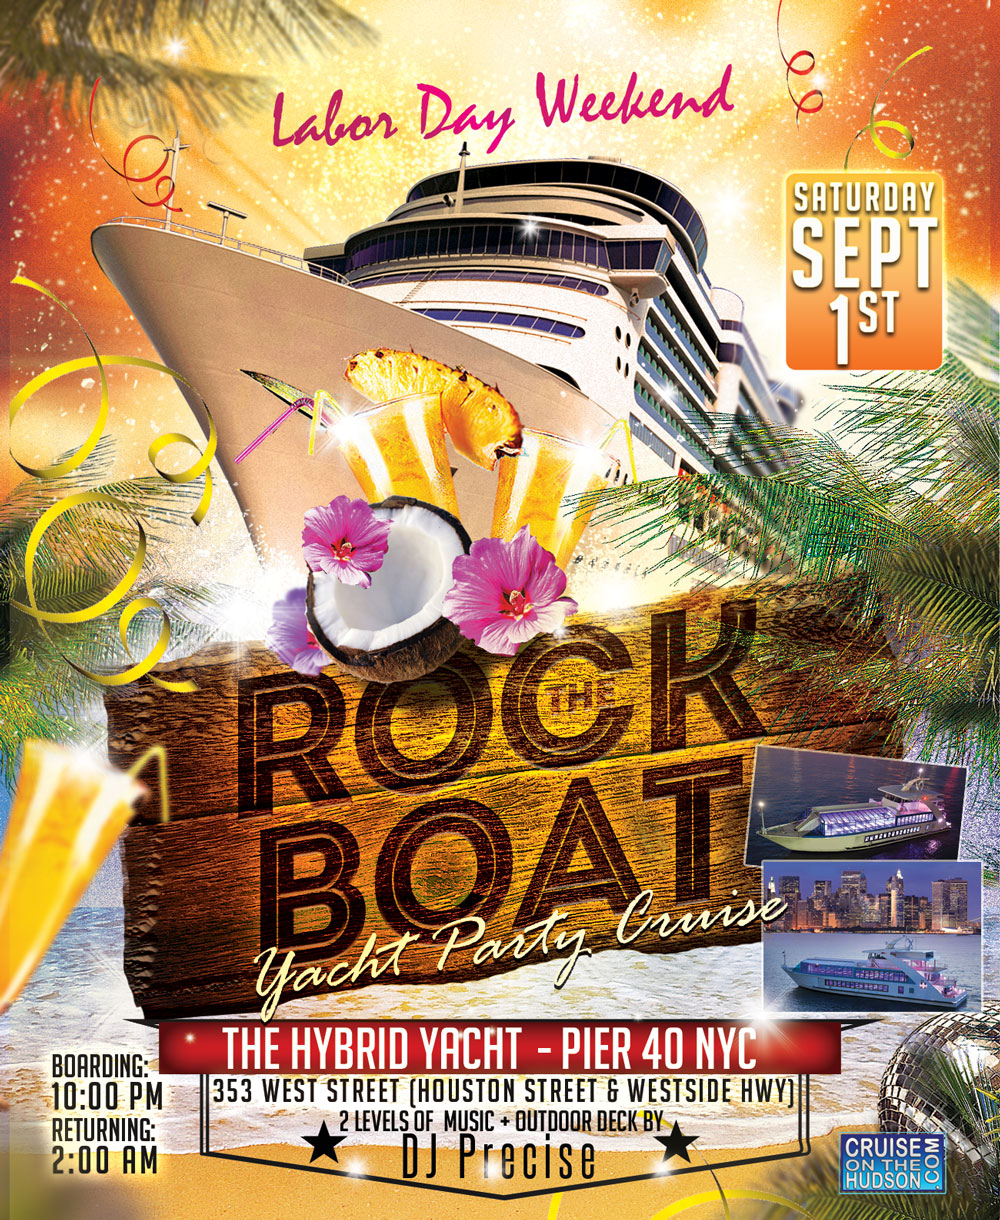 Rock The Boat End Of Summer Yacht Party Dance Cruise NYC Boat Party Hornblower Hybrid Yacht boat Pier 40 NYC